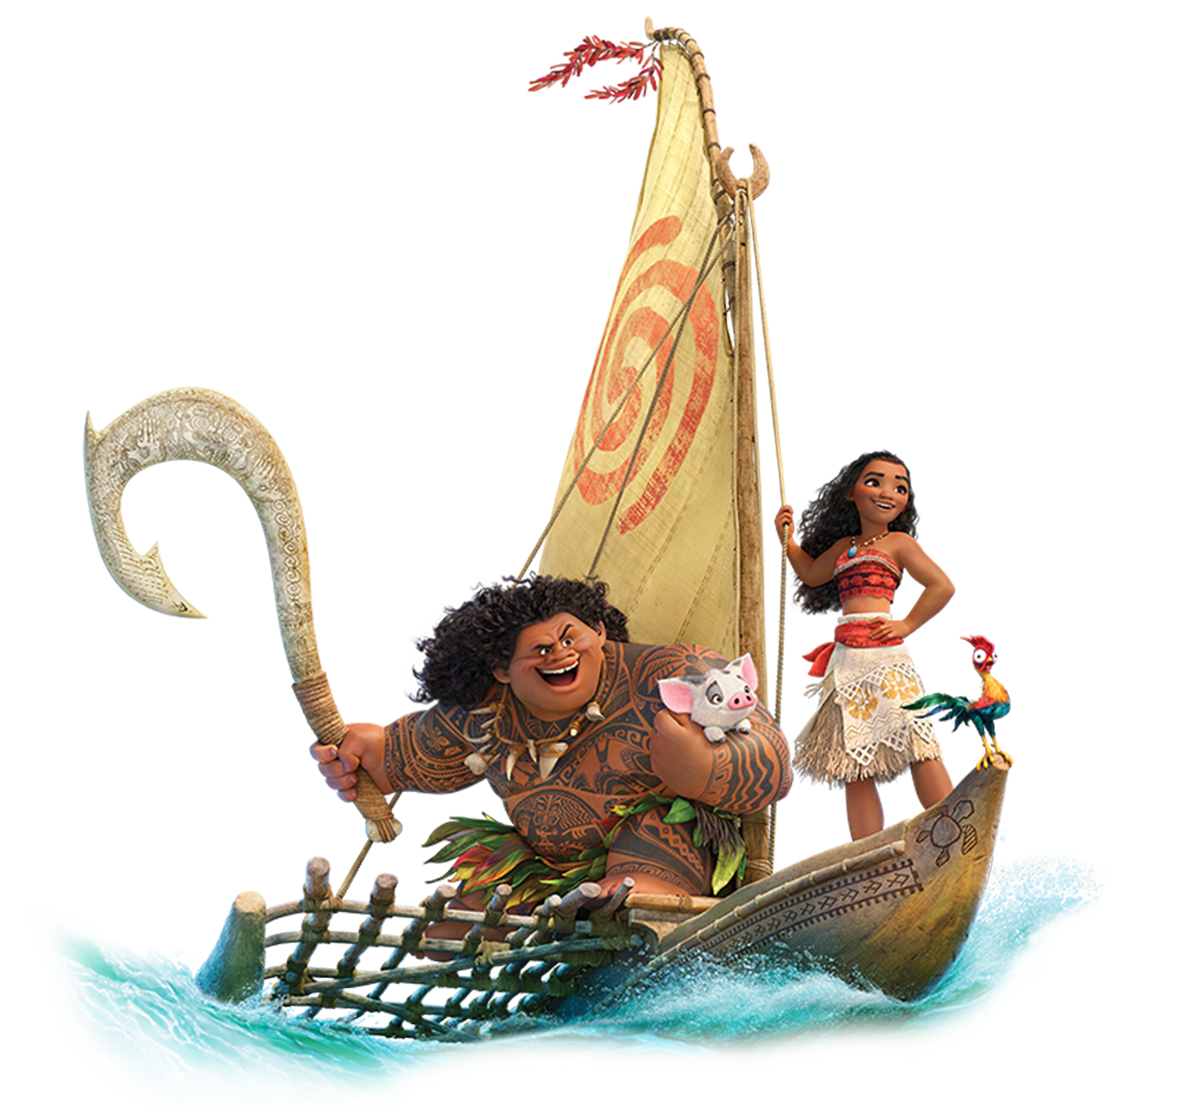 Picture images hd free. Png moana jpg stock